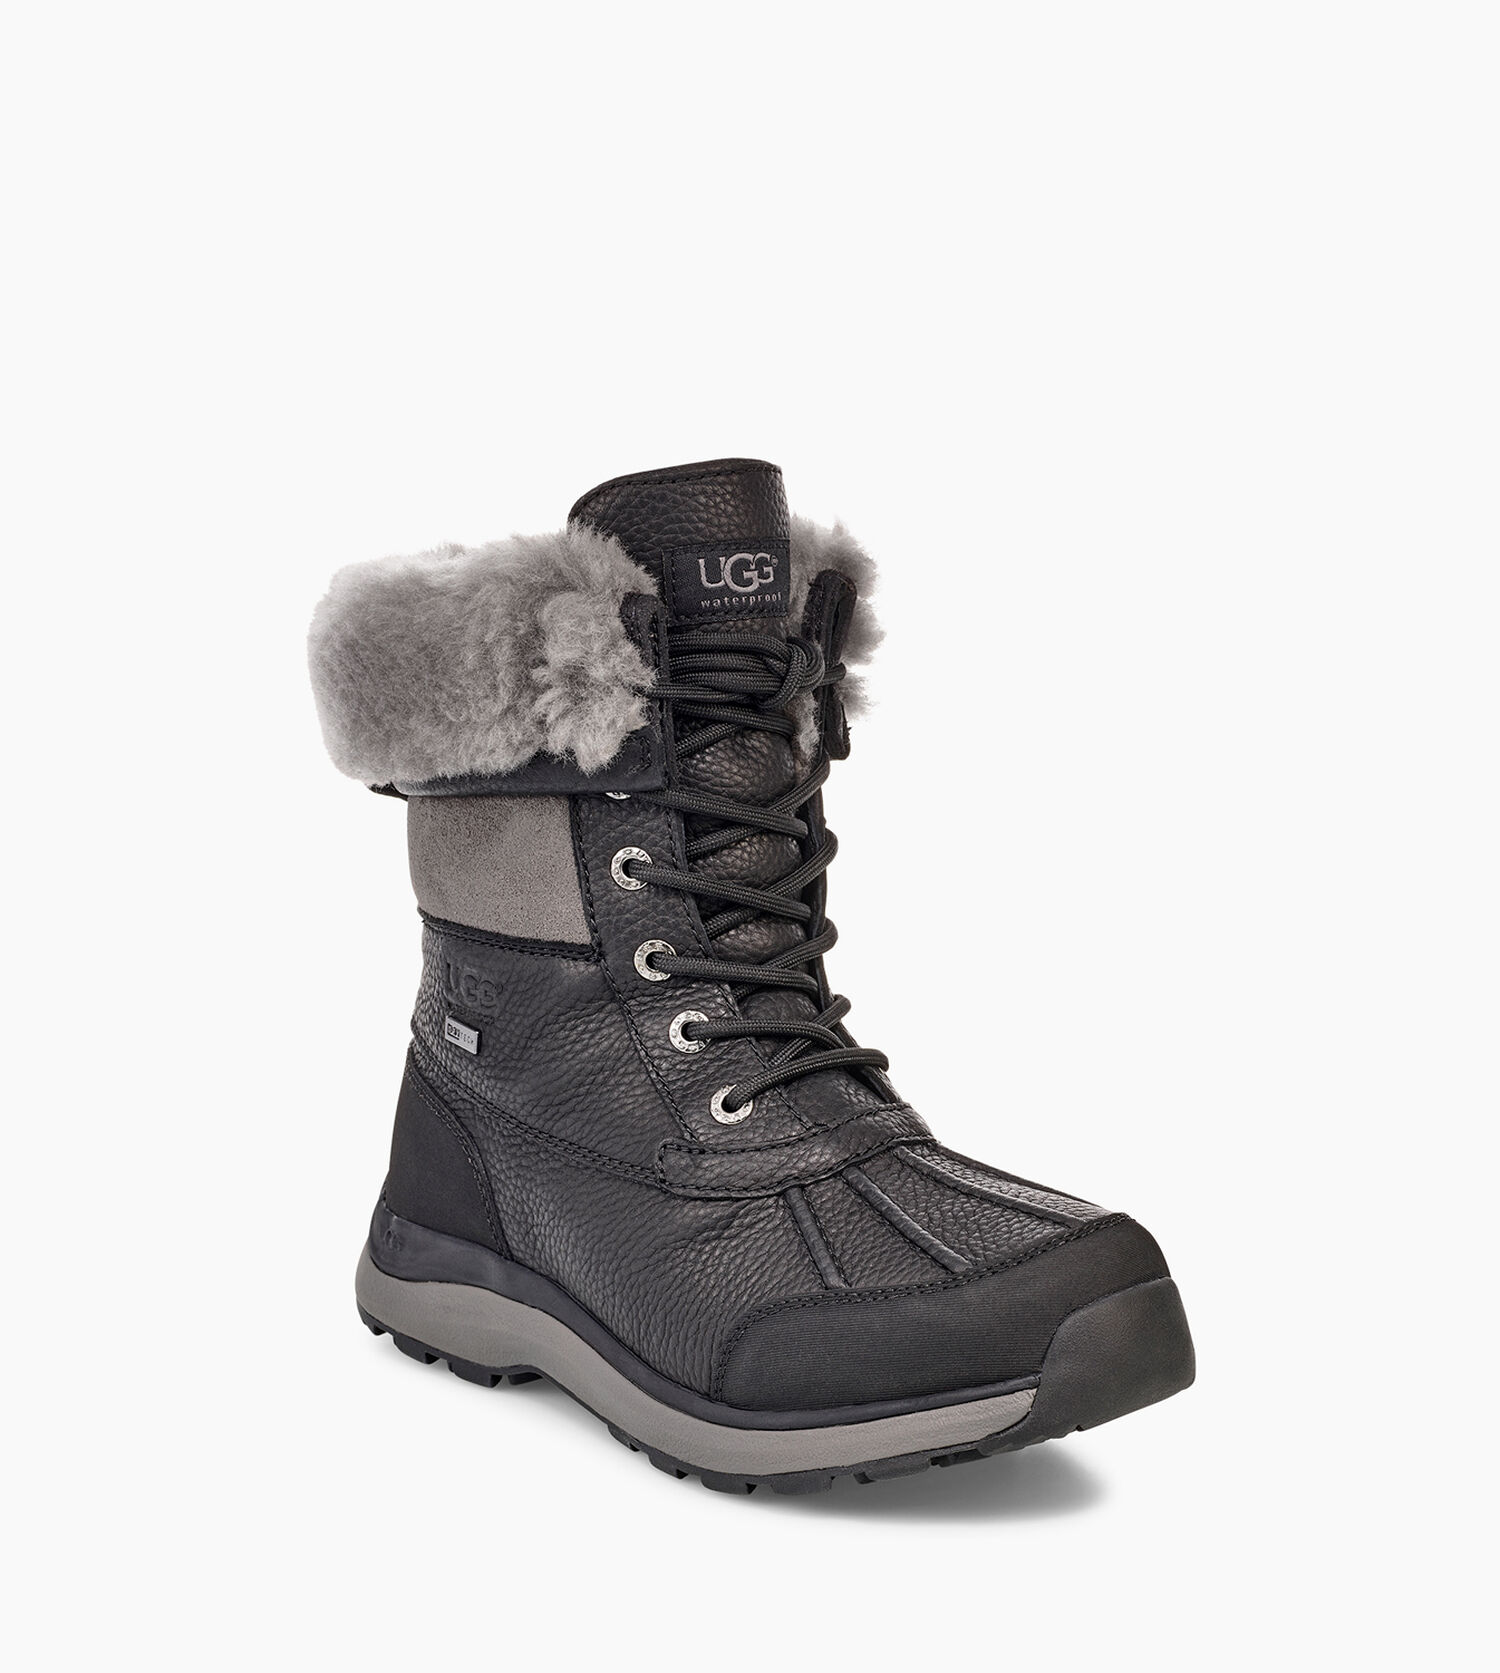 2b84a87cce1 Women's Share this product Adirondack III Boot